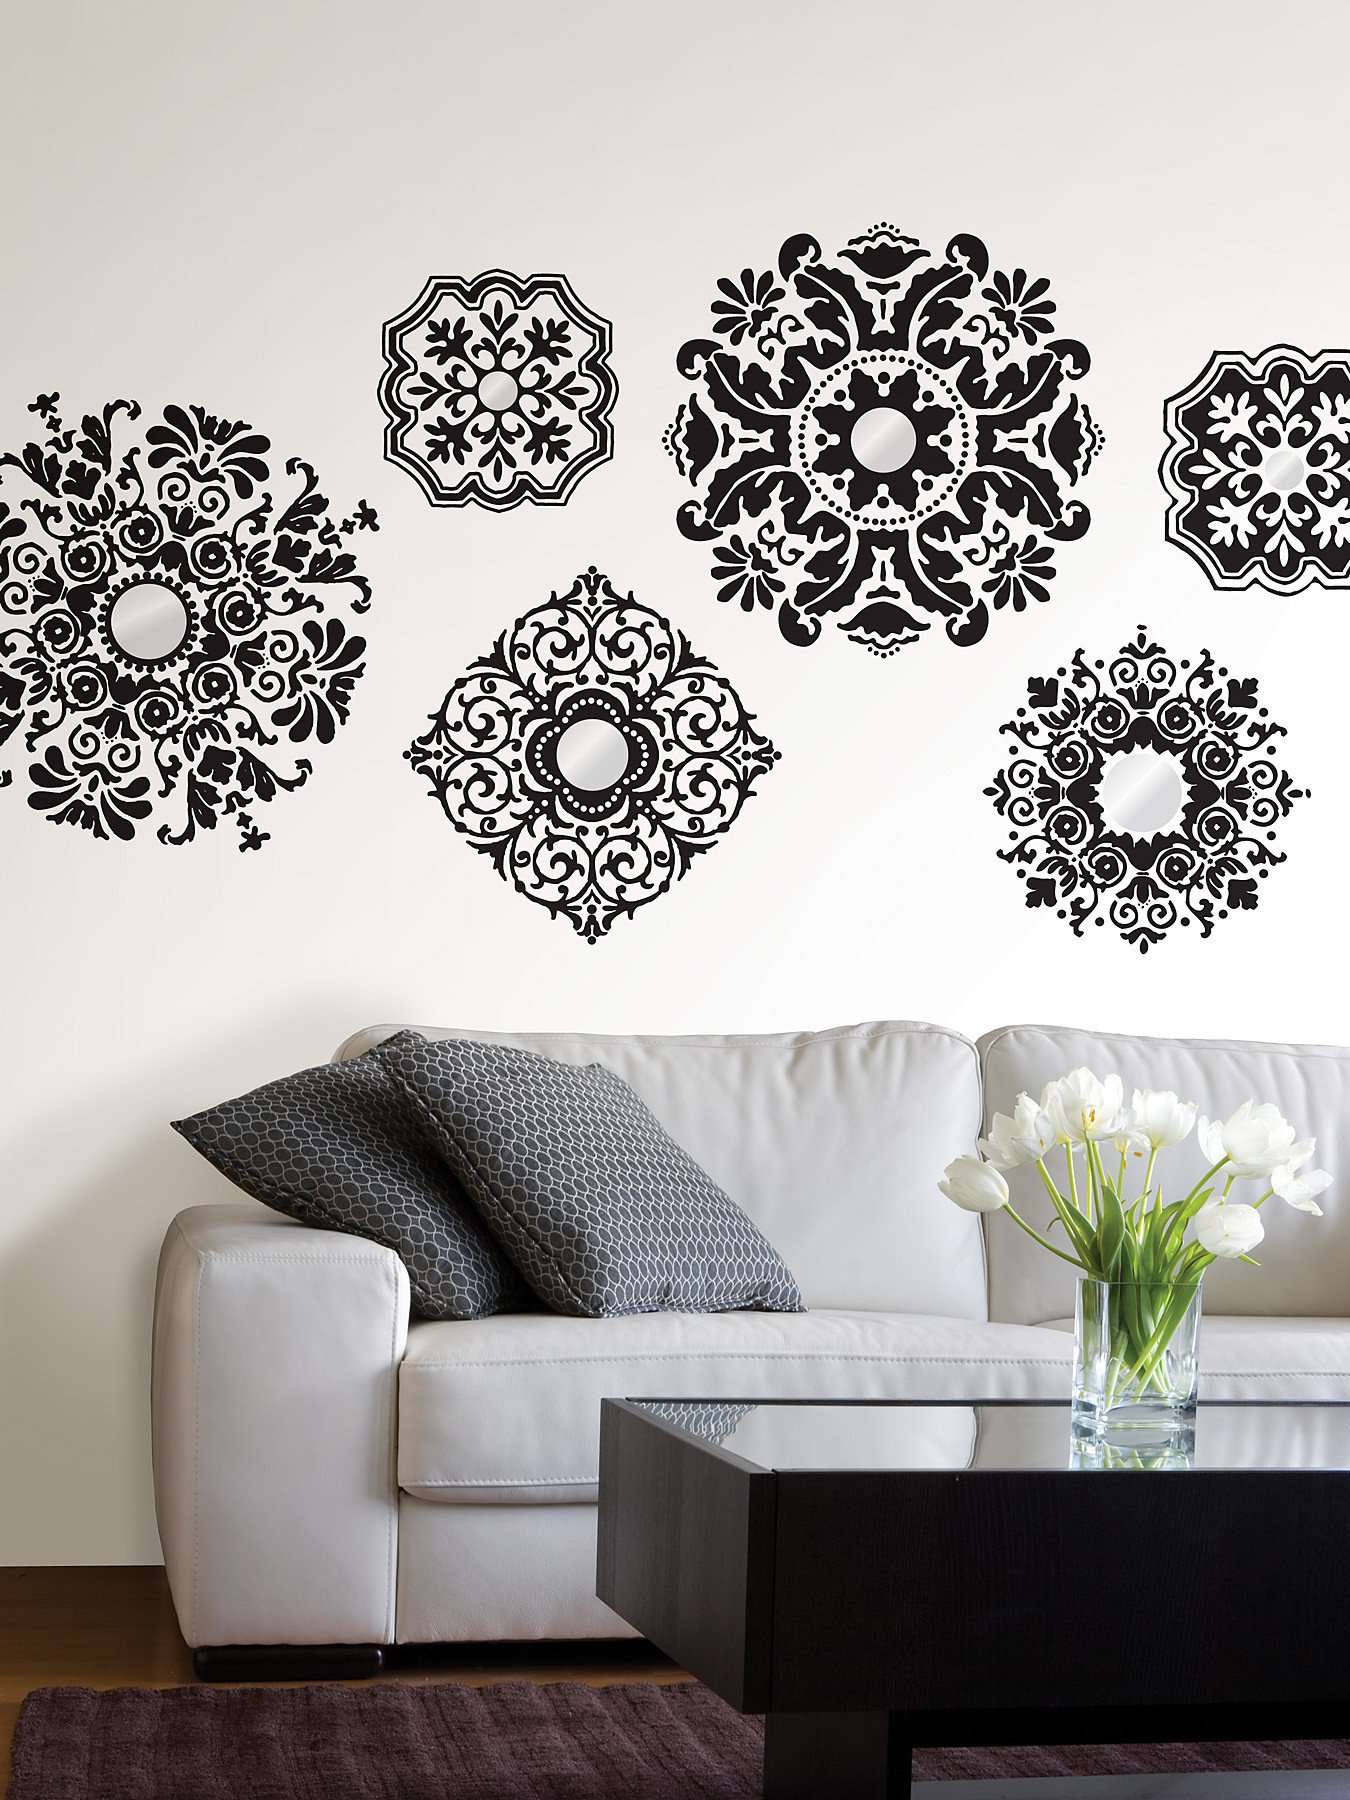 15 Nice Black and White Wall Decor Ideas Home Ideas Blog